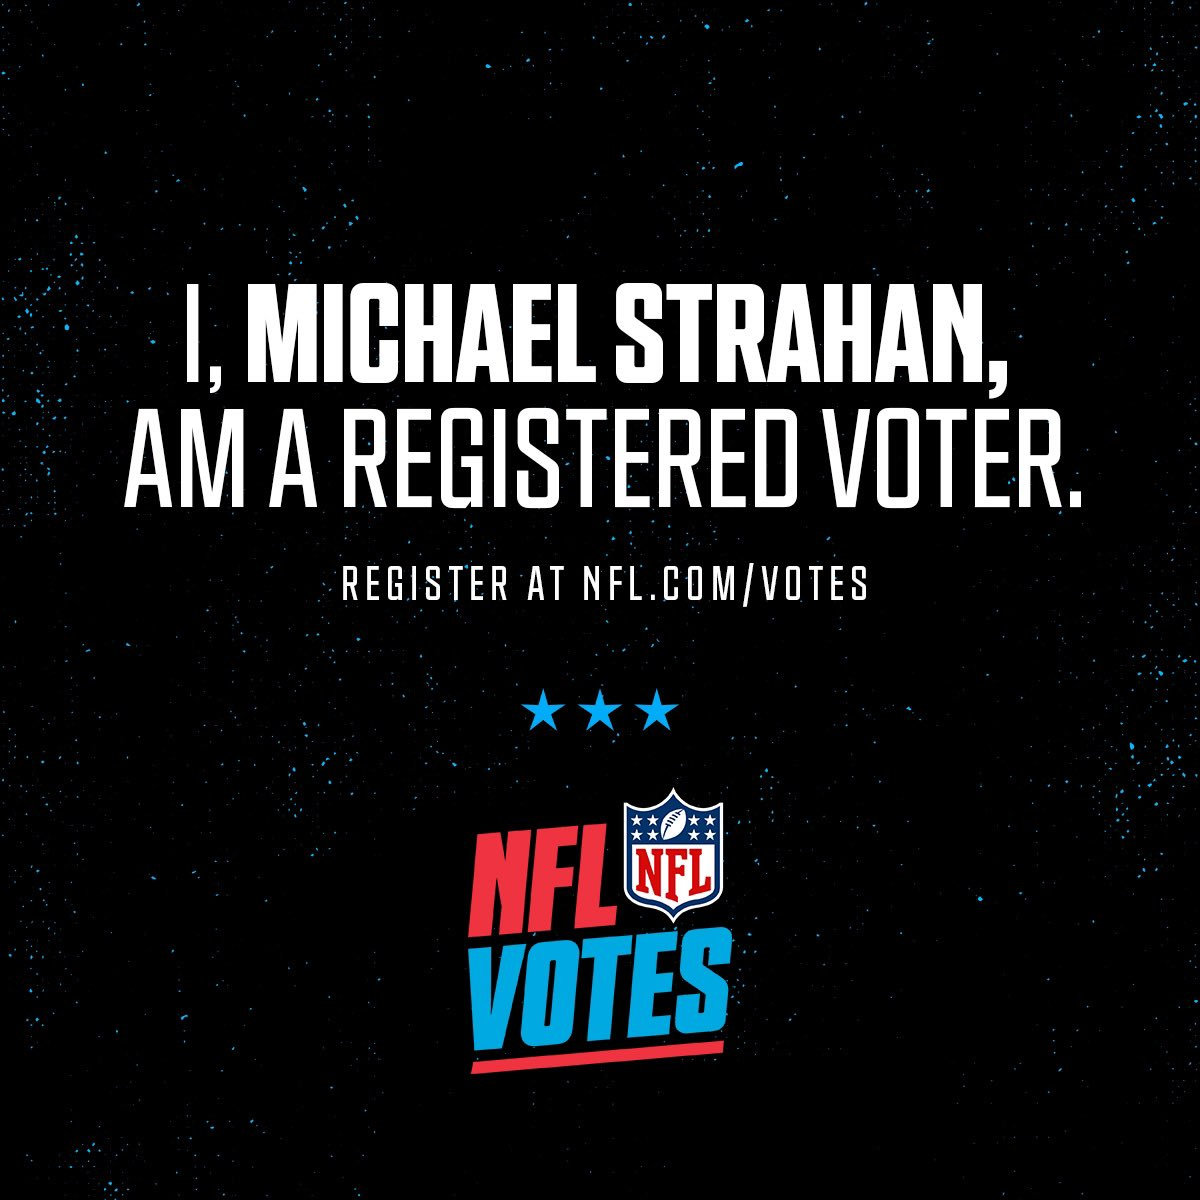 Use your voice and vote! Register today at NFL.com/votes #NFLVotes